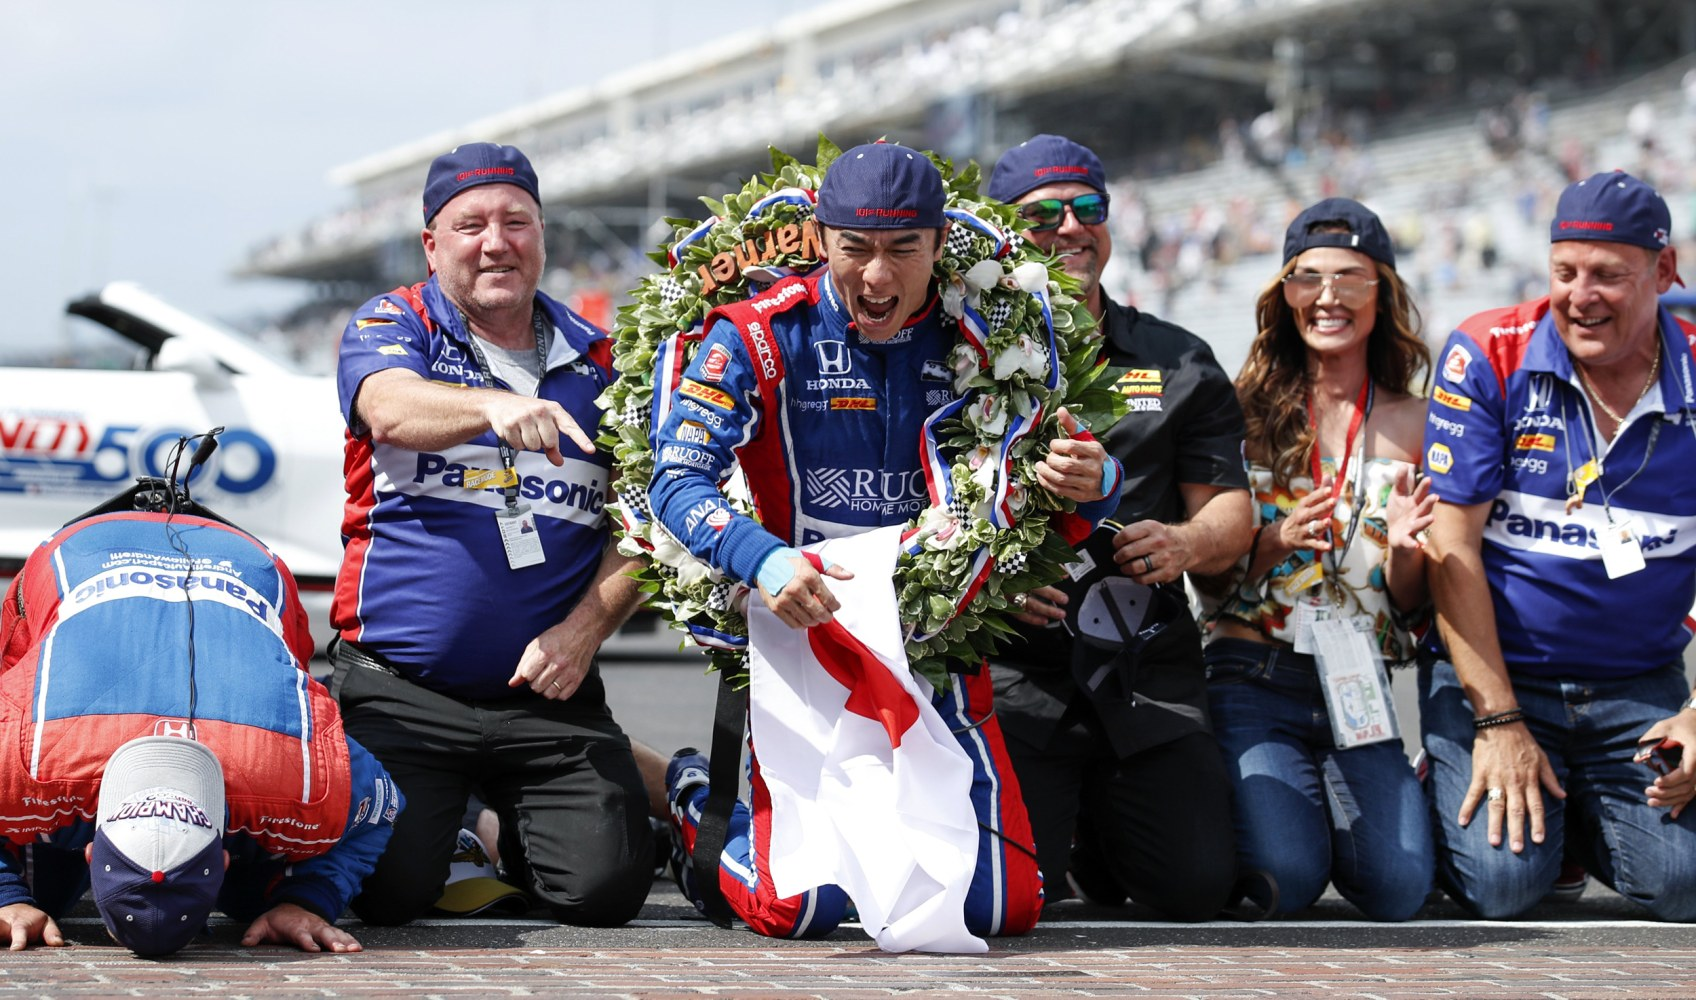 Image Japanese driver Takuma Sato of Andretti Autosport celebrates with his team after winning the 101st running of the Indianapolis 500 auto race at the Indianapolis Motor Speedway in Indianapolis Indiana